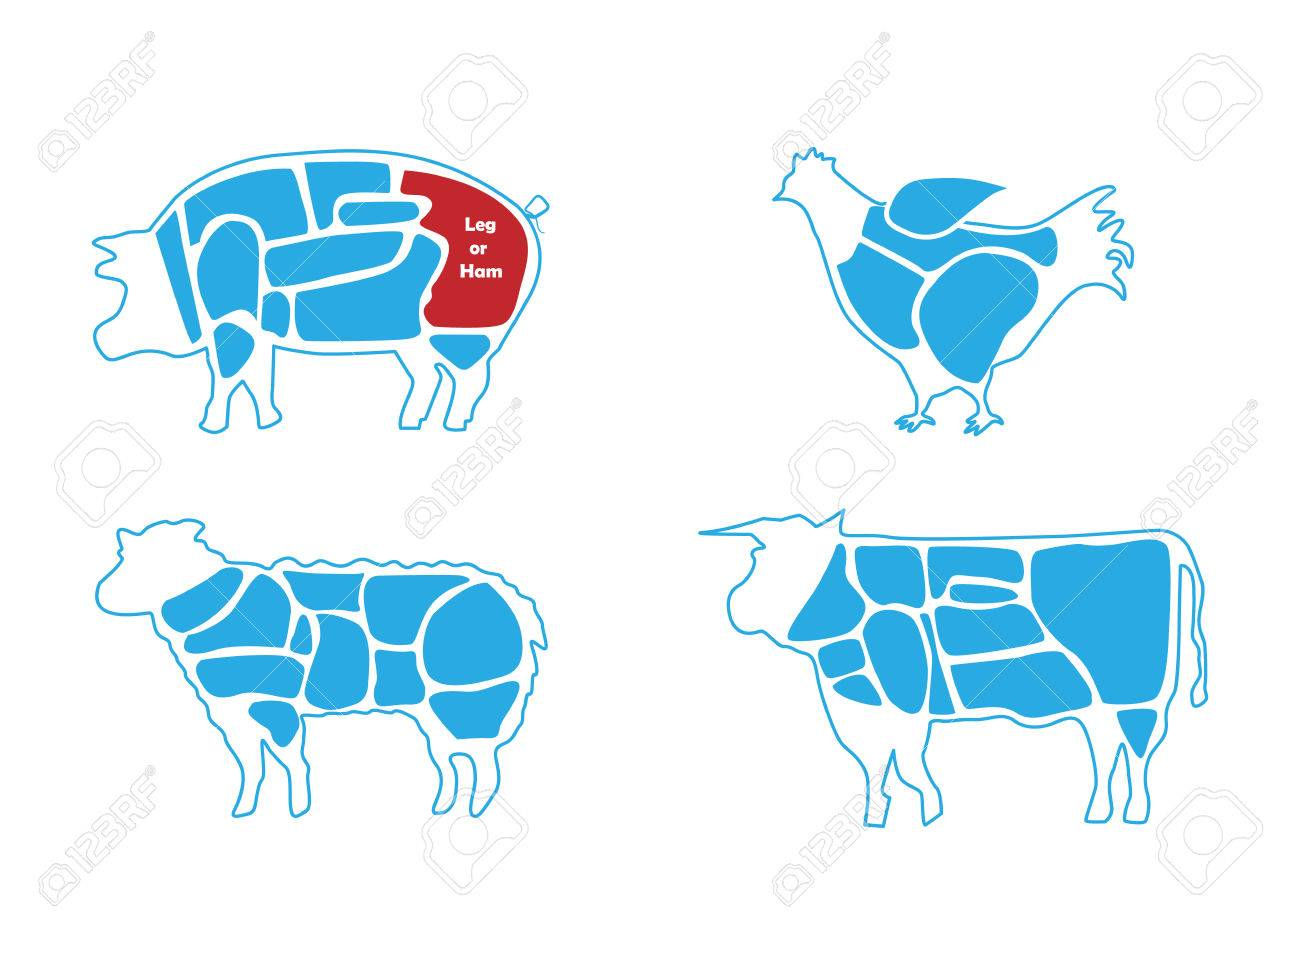 Beef Pork Lamb And Chicken Meat Butchers Chart Royalty Free Pig Butcher Diagram Stock Vector 80710716